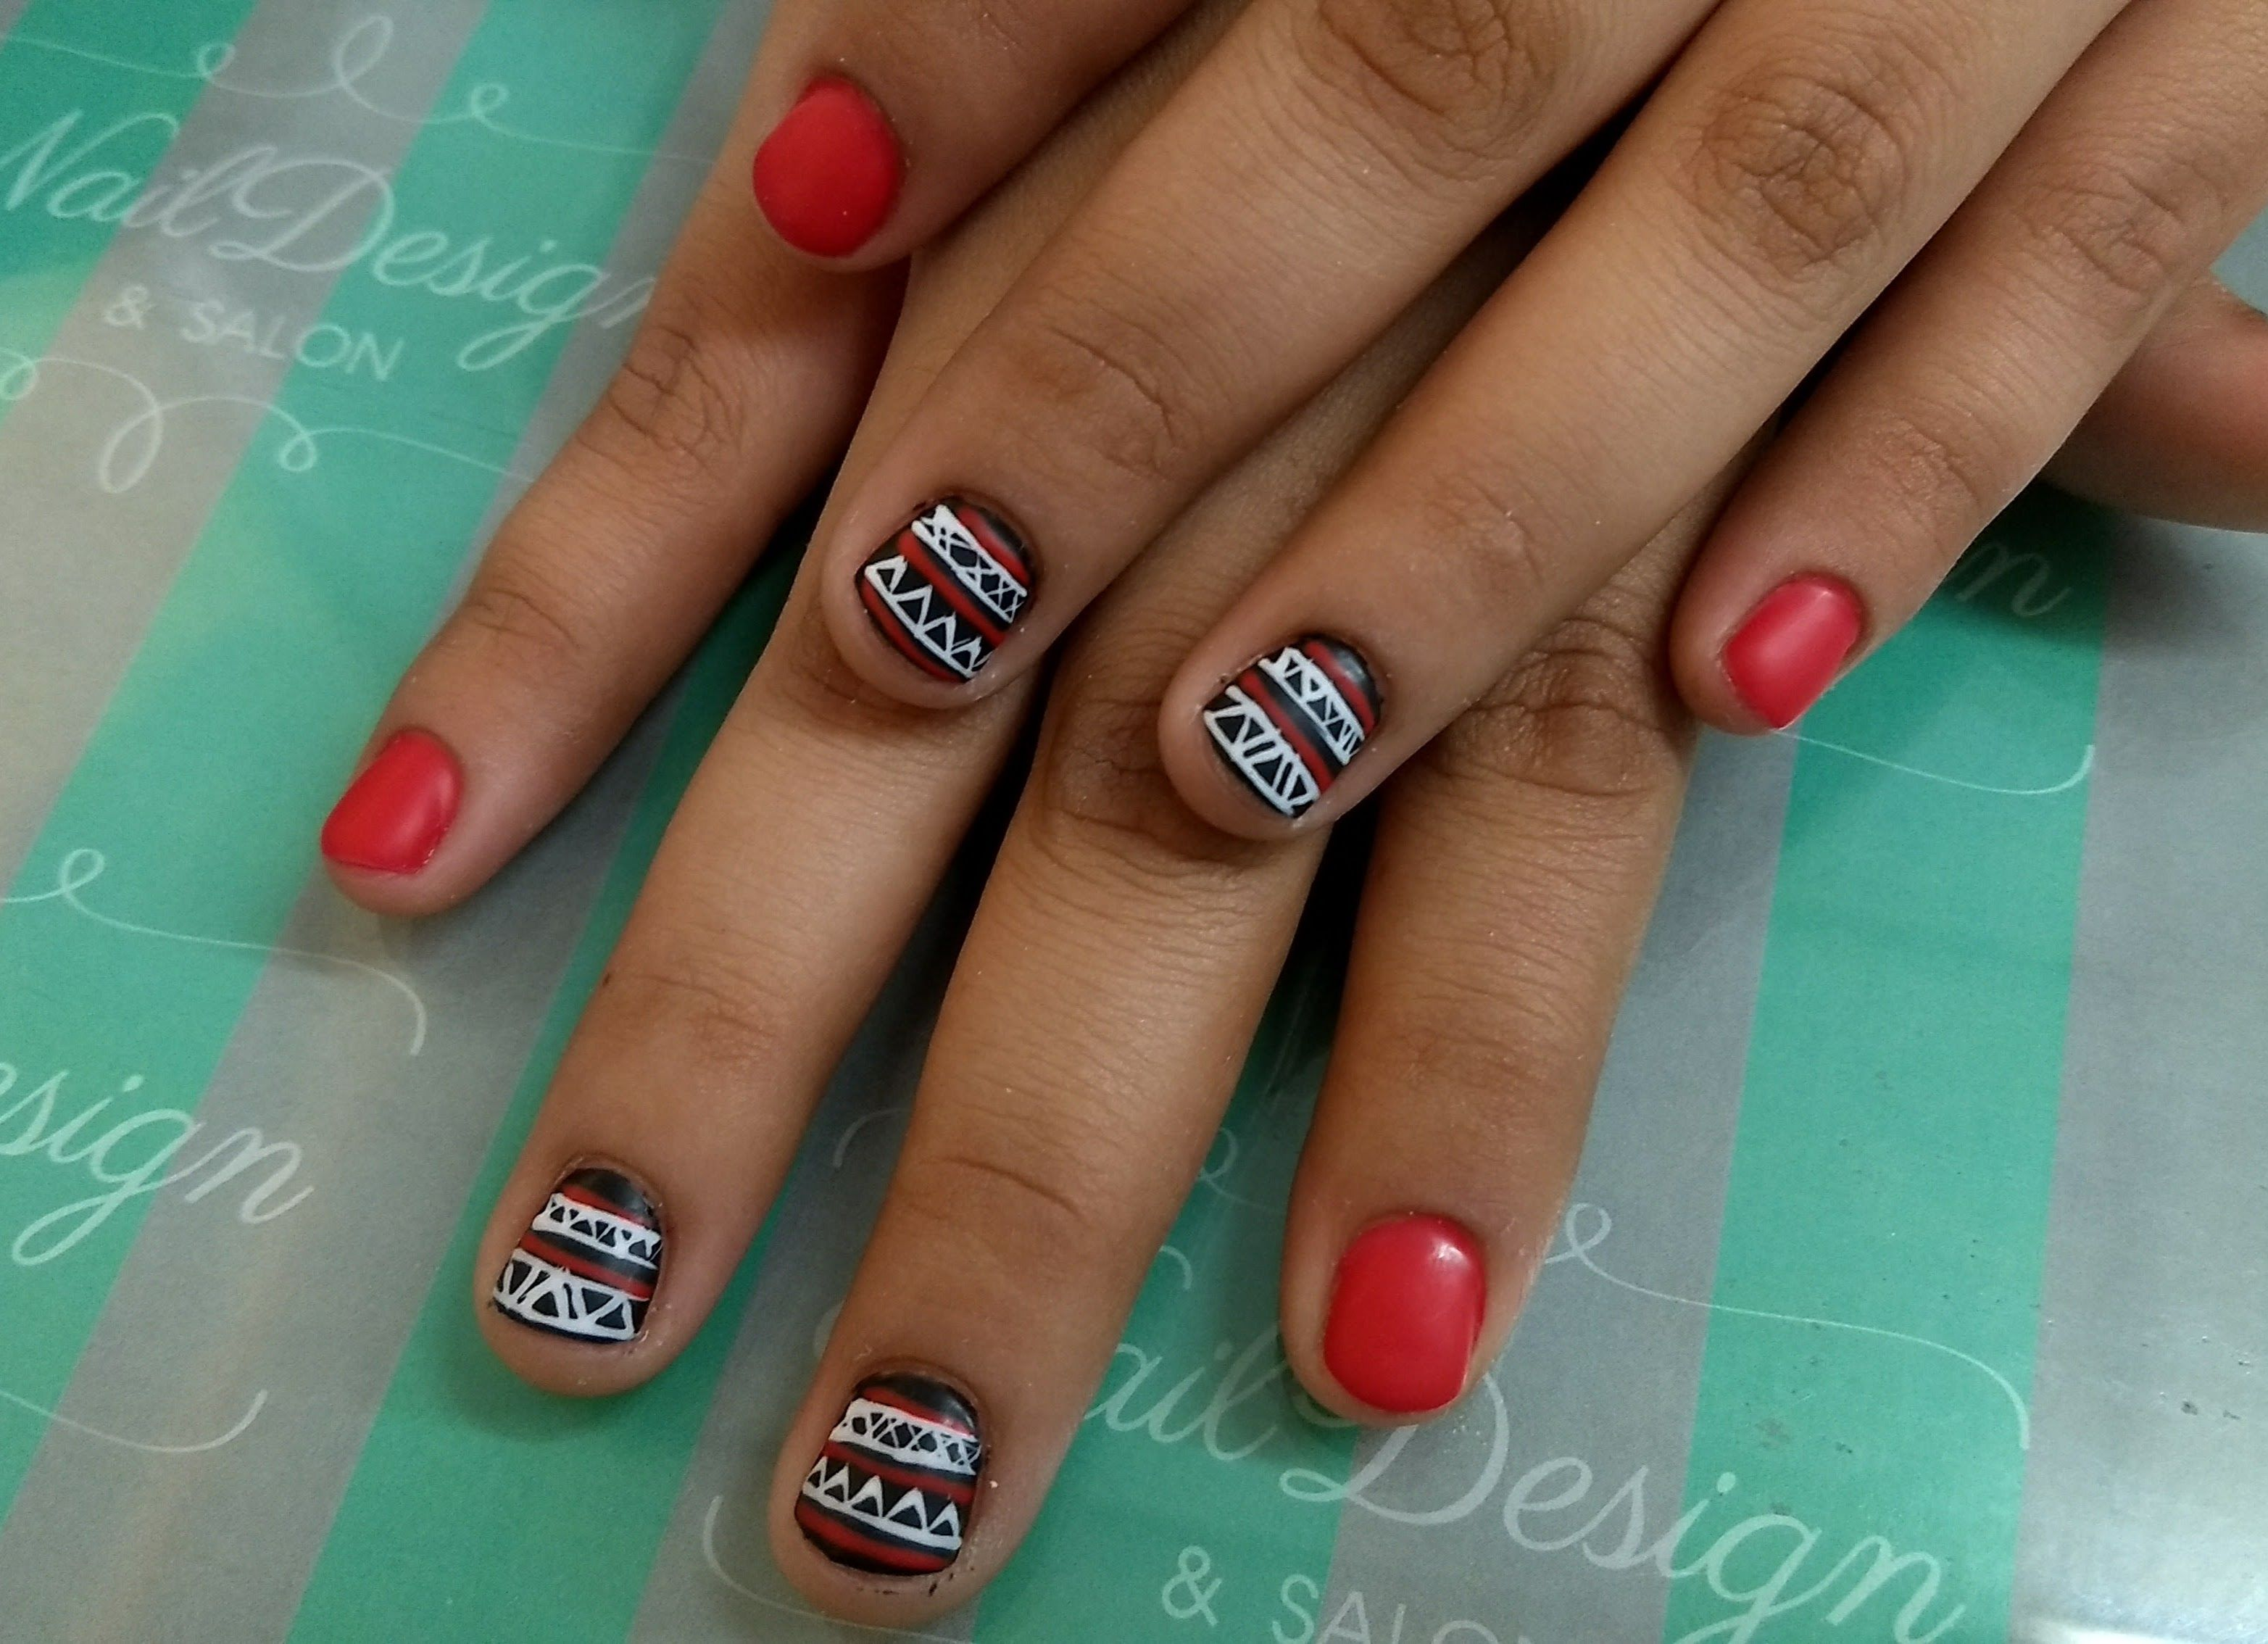 U as manos nail art estilo franc s manicure desde para hacer falses nails pedicure - Unas permanentes decoradas ...